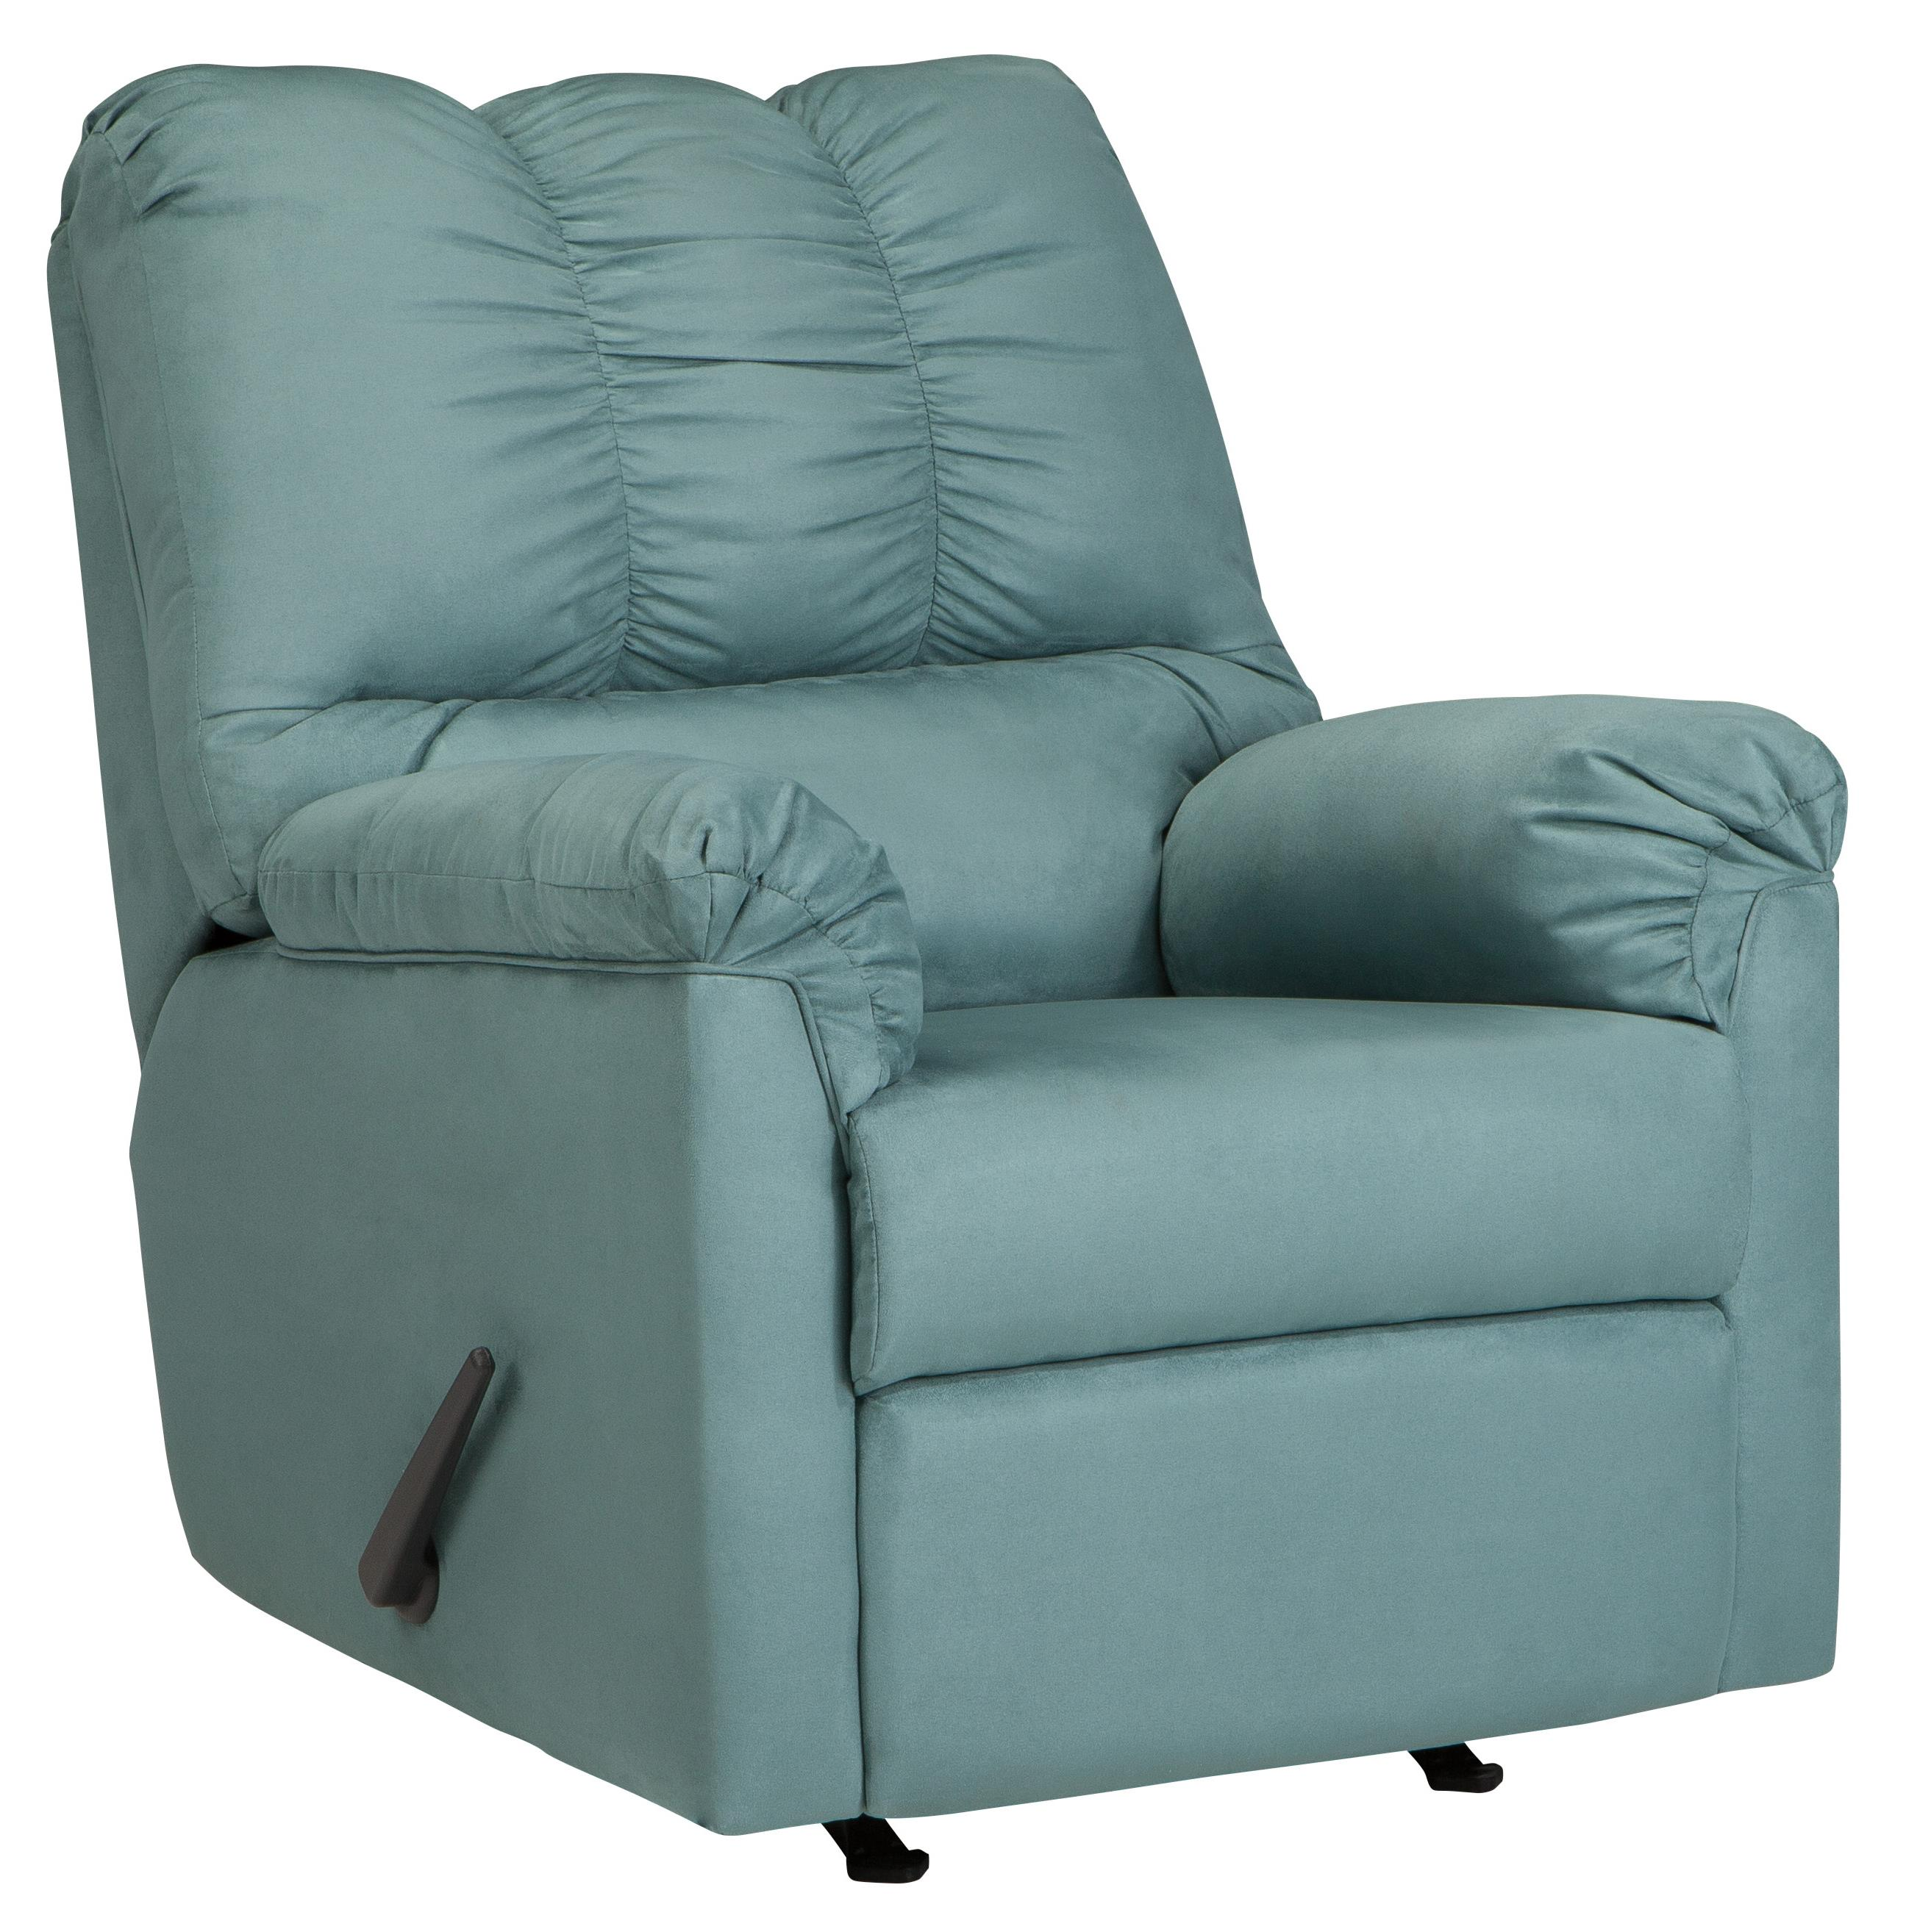 Signature Design by Ashley Darcy - Sky Rocker Recliner - Item Number: 7500625